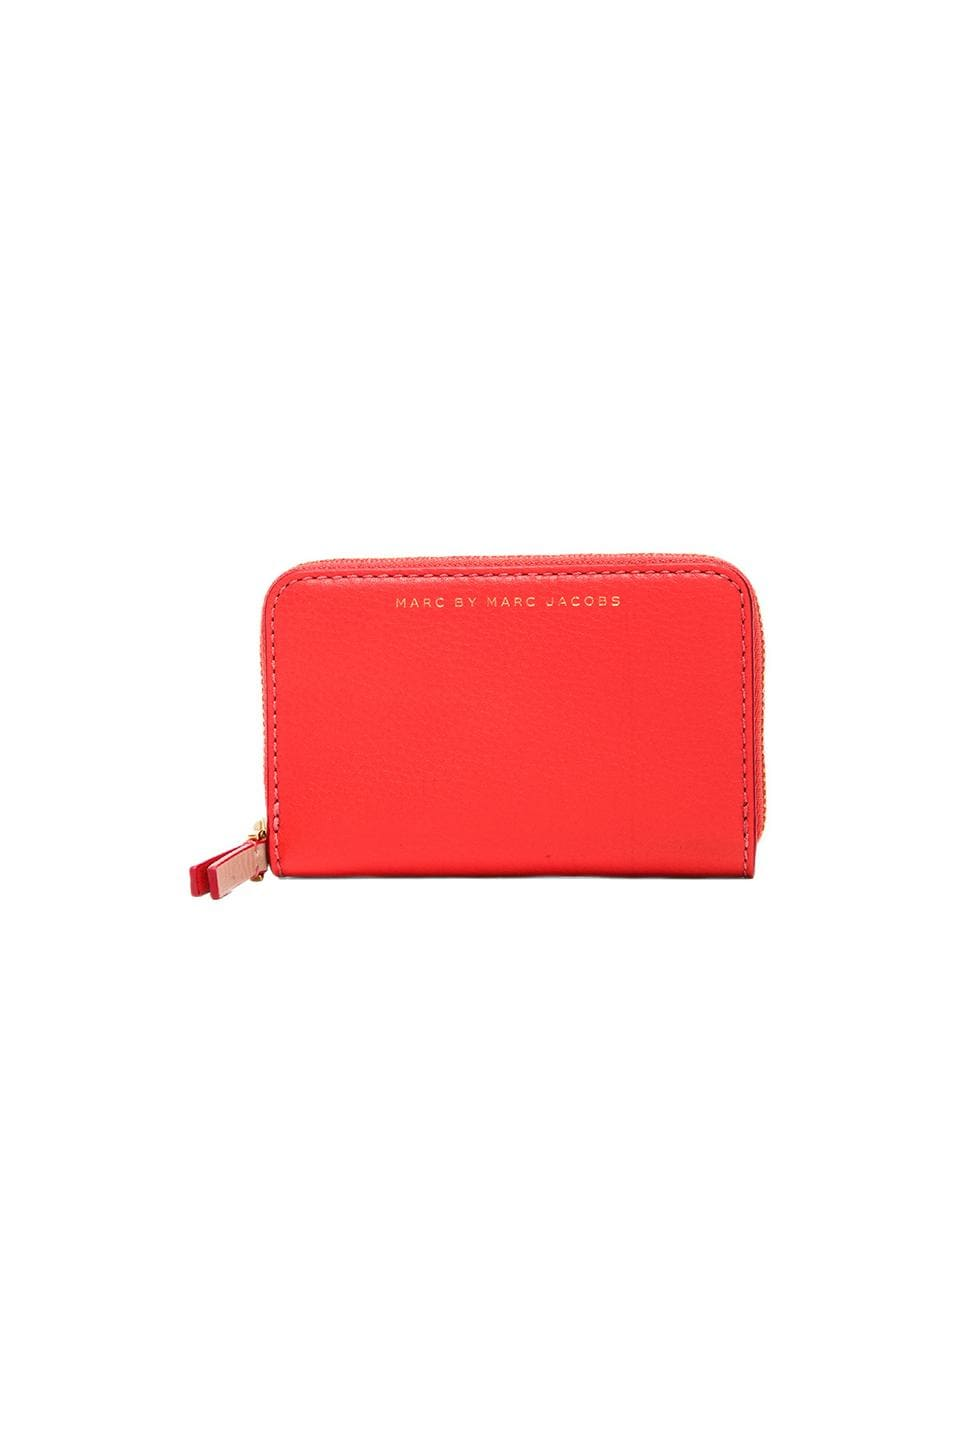 Marc by Marc Jacobs Sophisticato Zip Card Case in Vibrant Orange Multi